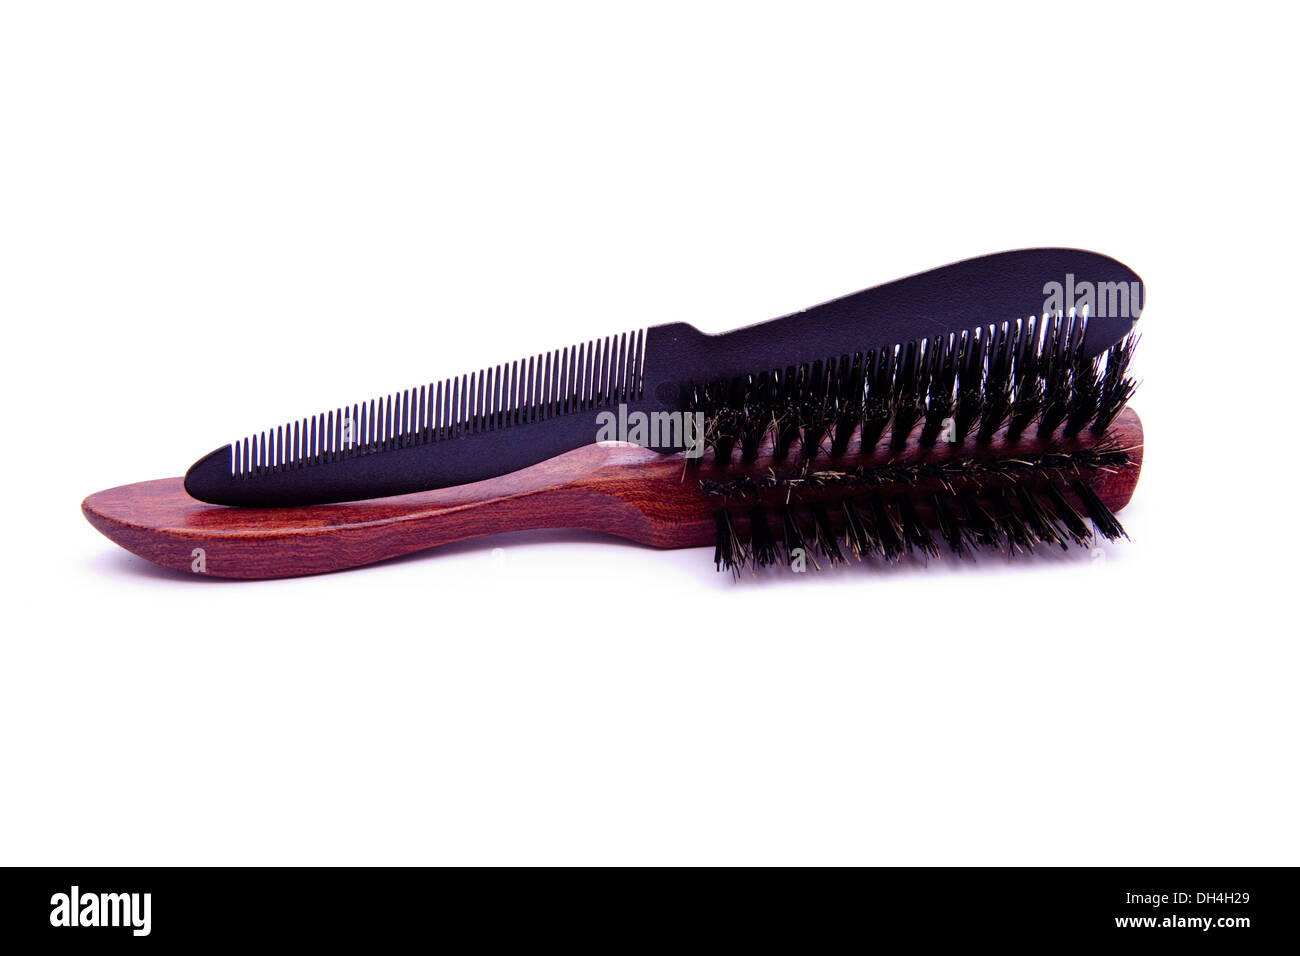 Hairbrush with comb - Stock Image